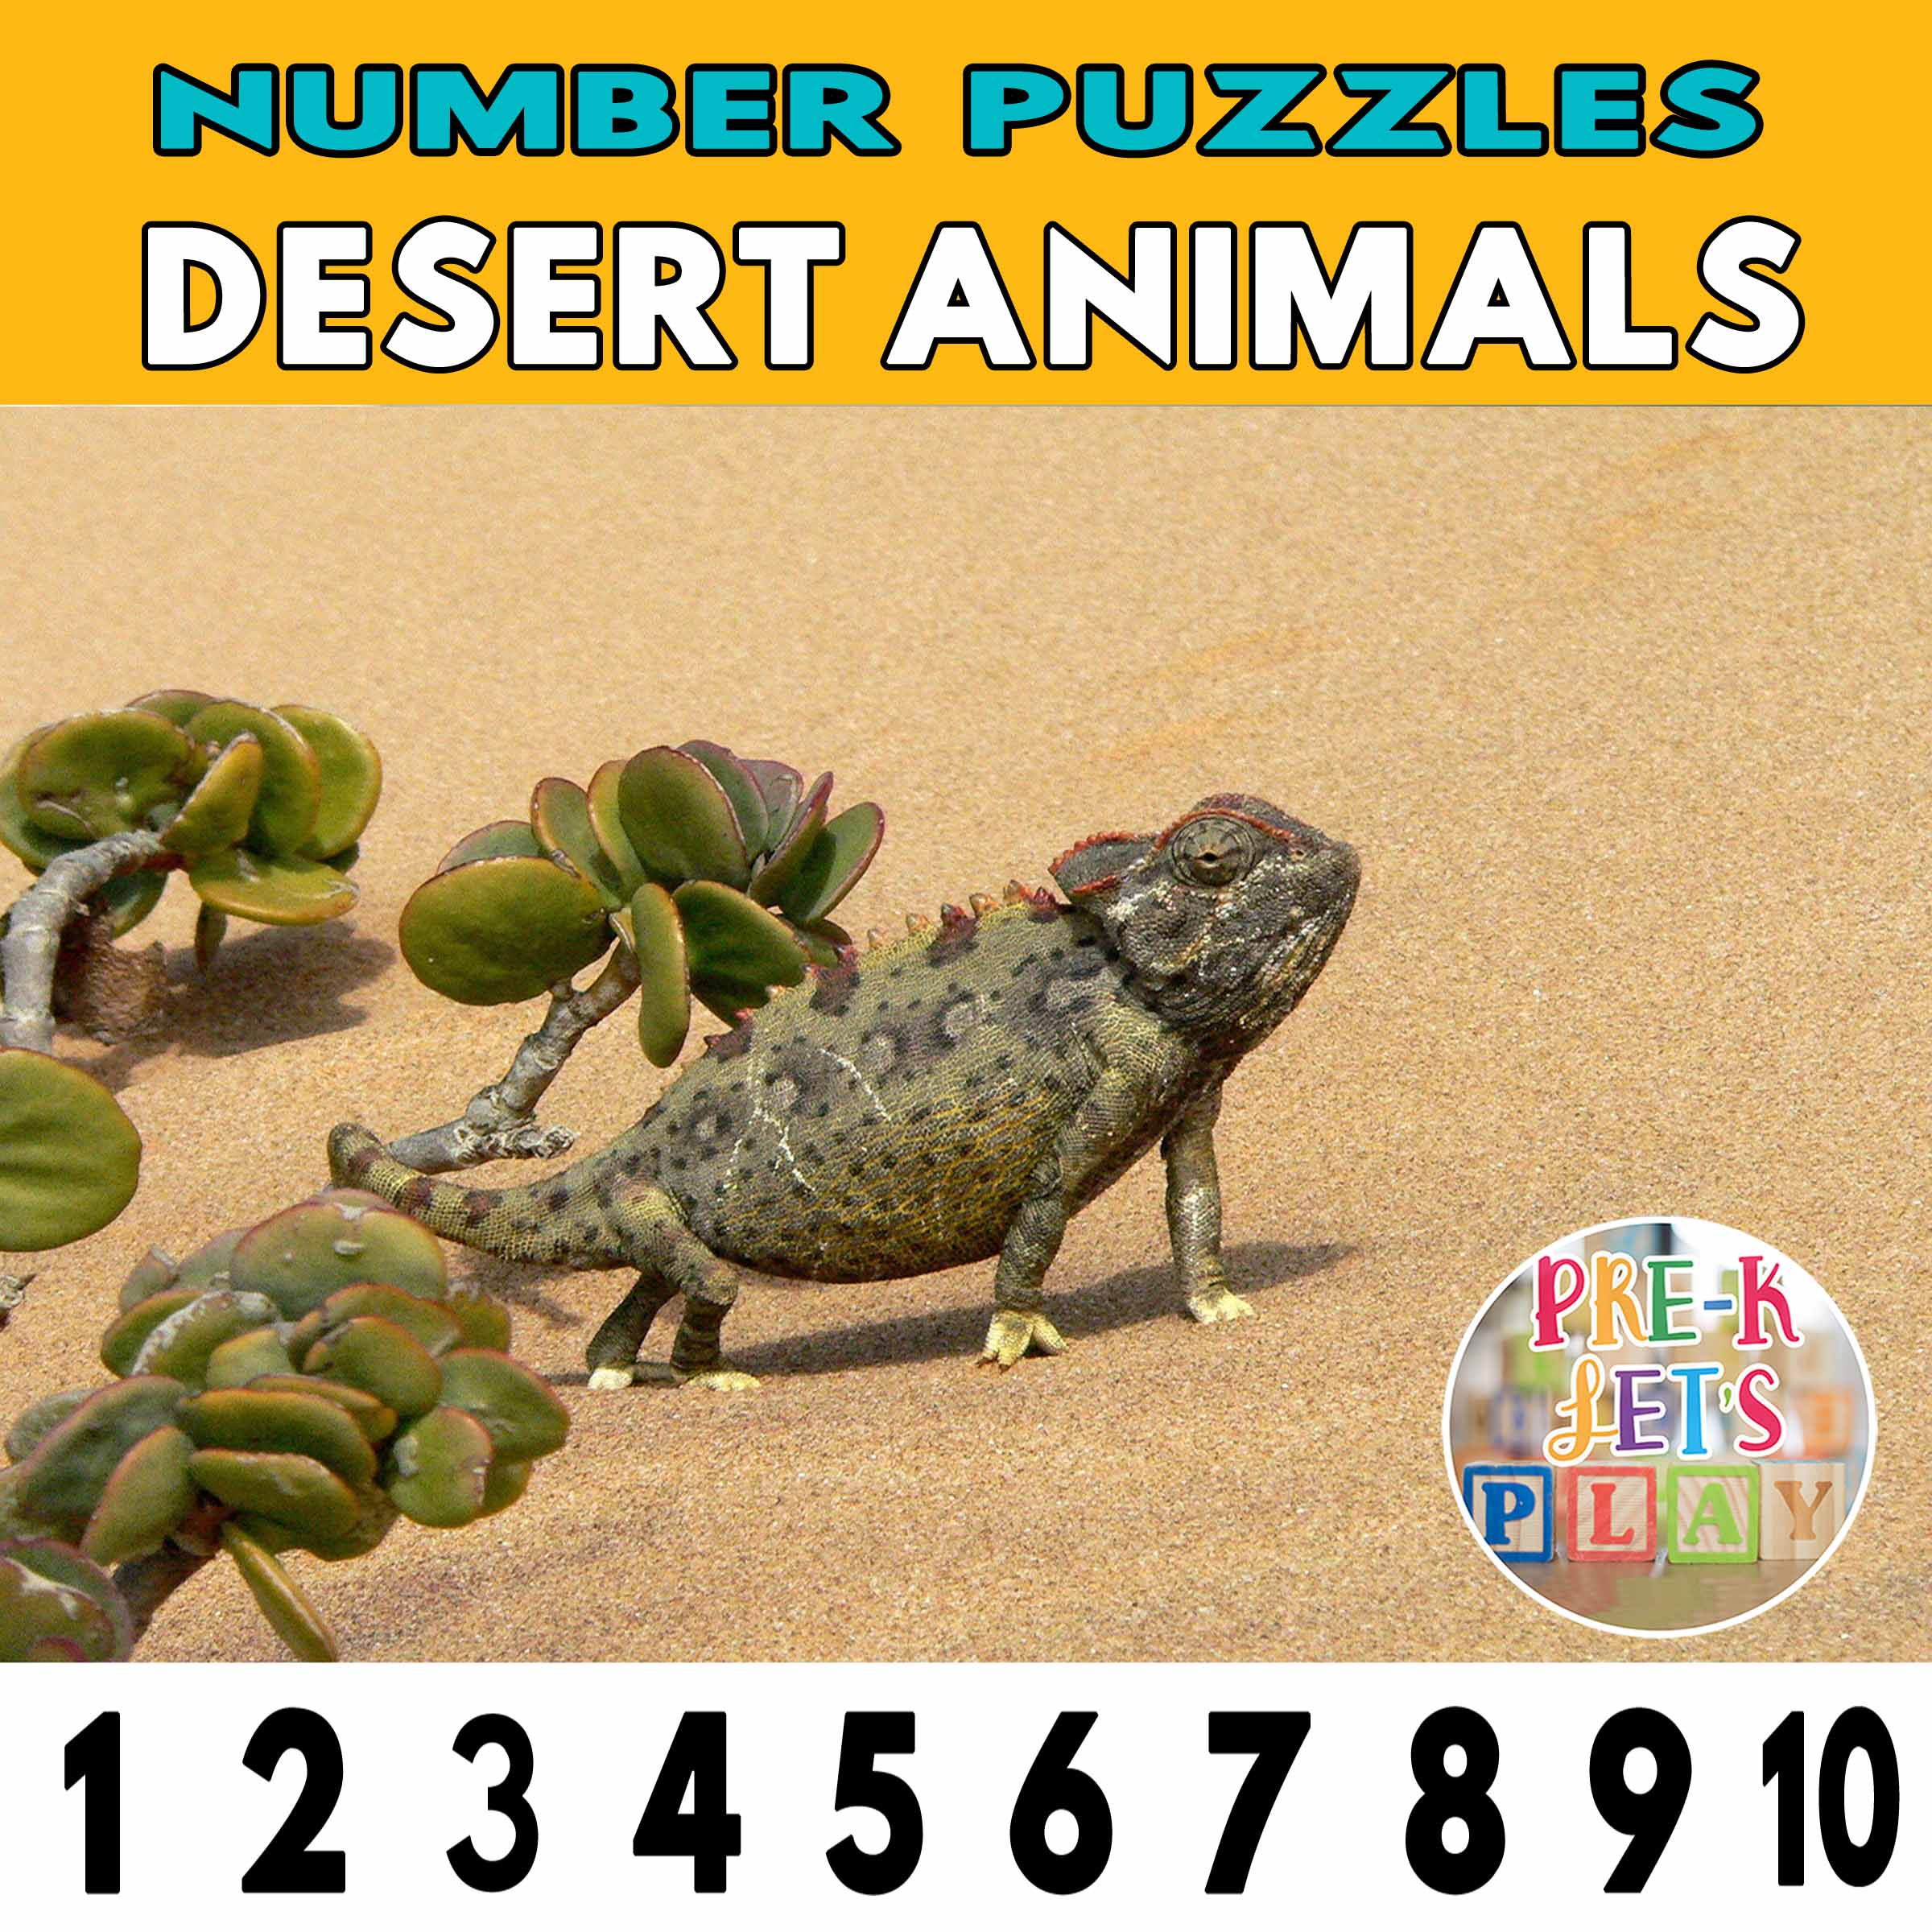 number strip puzzle cover of a chameleon. This counting game activity helps kids practice number order and identify other desert animals.